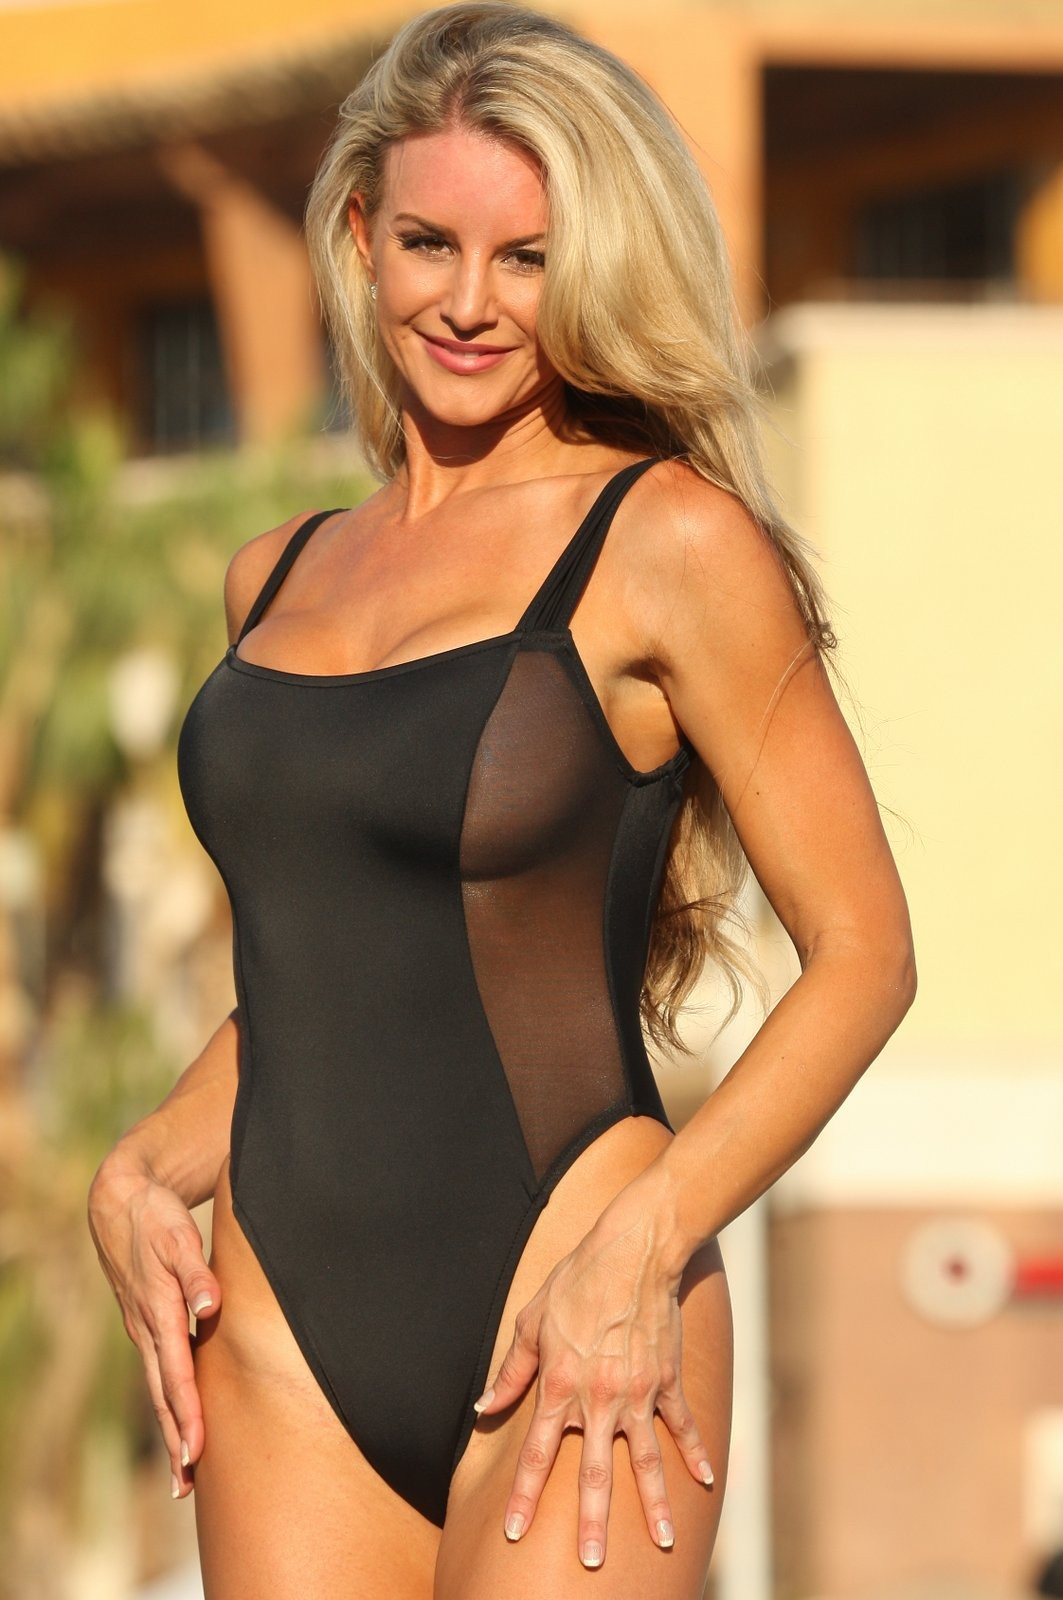 Sensual-One-Piece-Swimsuit-with Sheer-Side-Panel